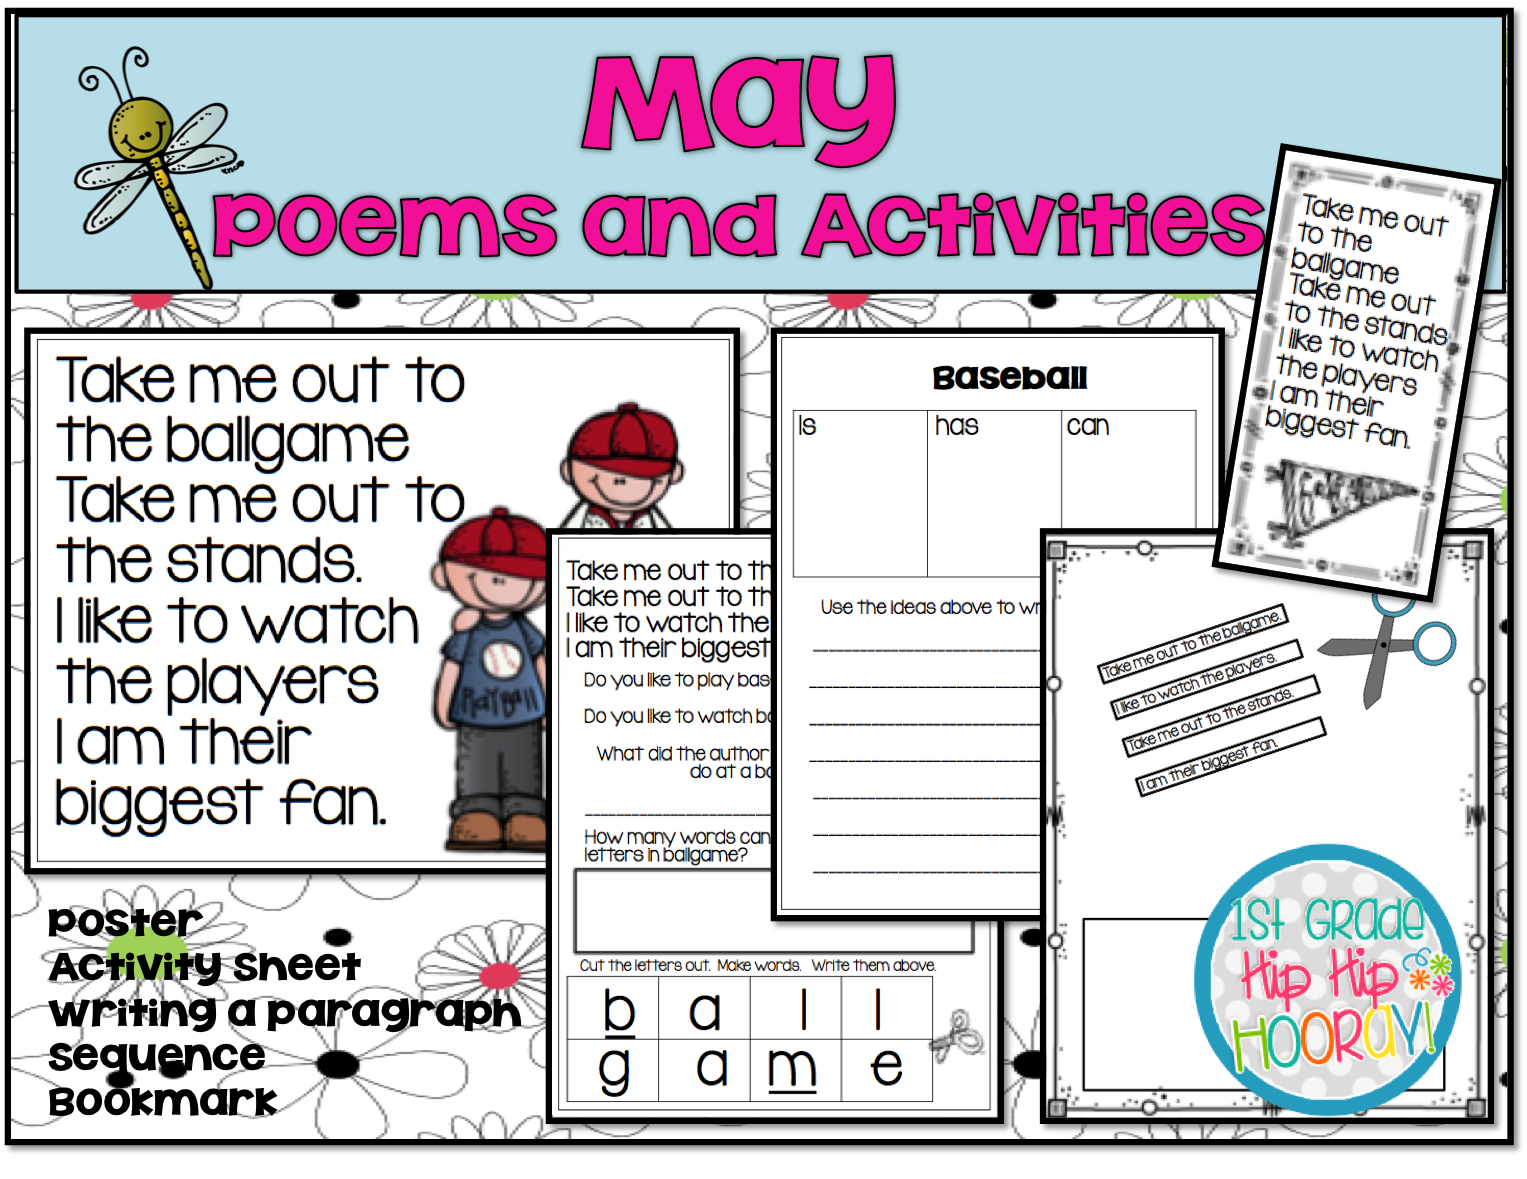 1st Grade Hip Hip Hooray May Poems And Activities